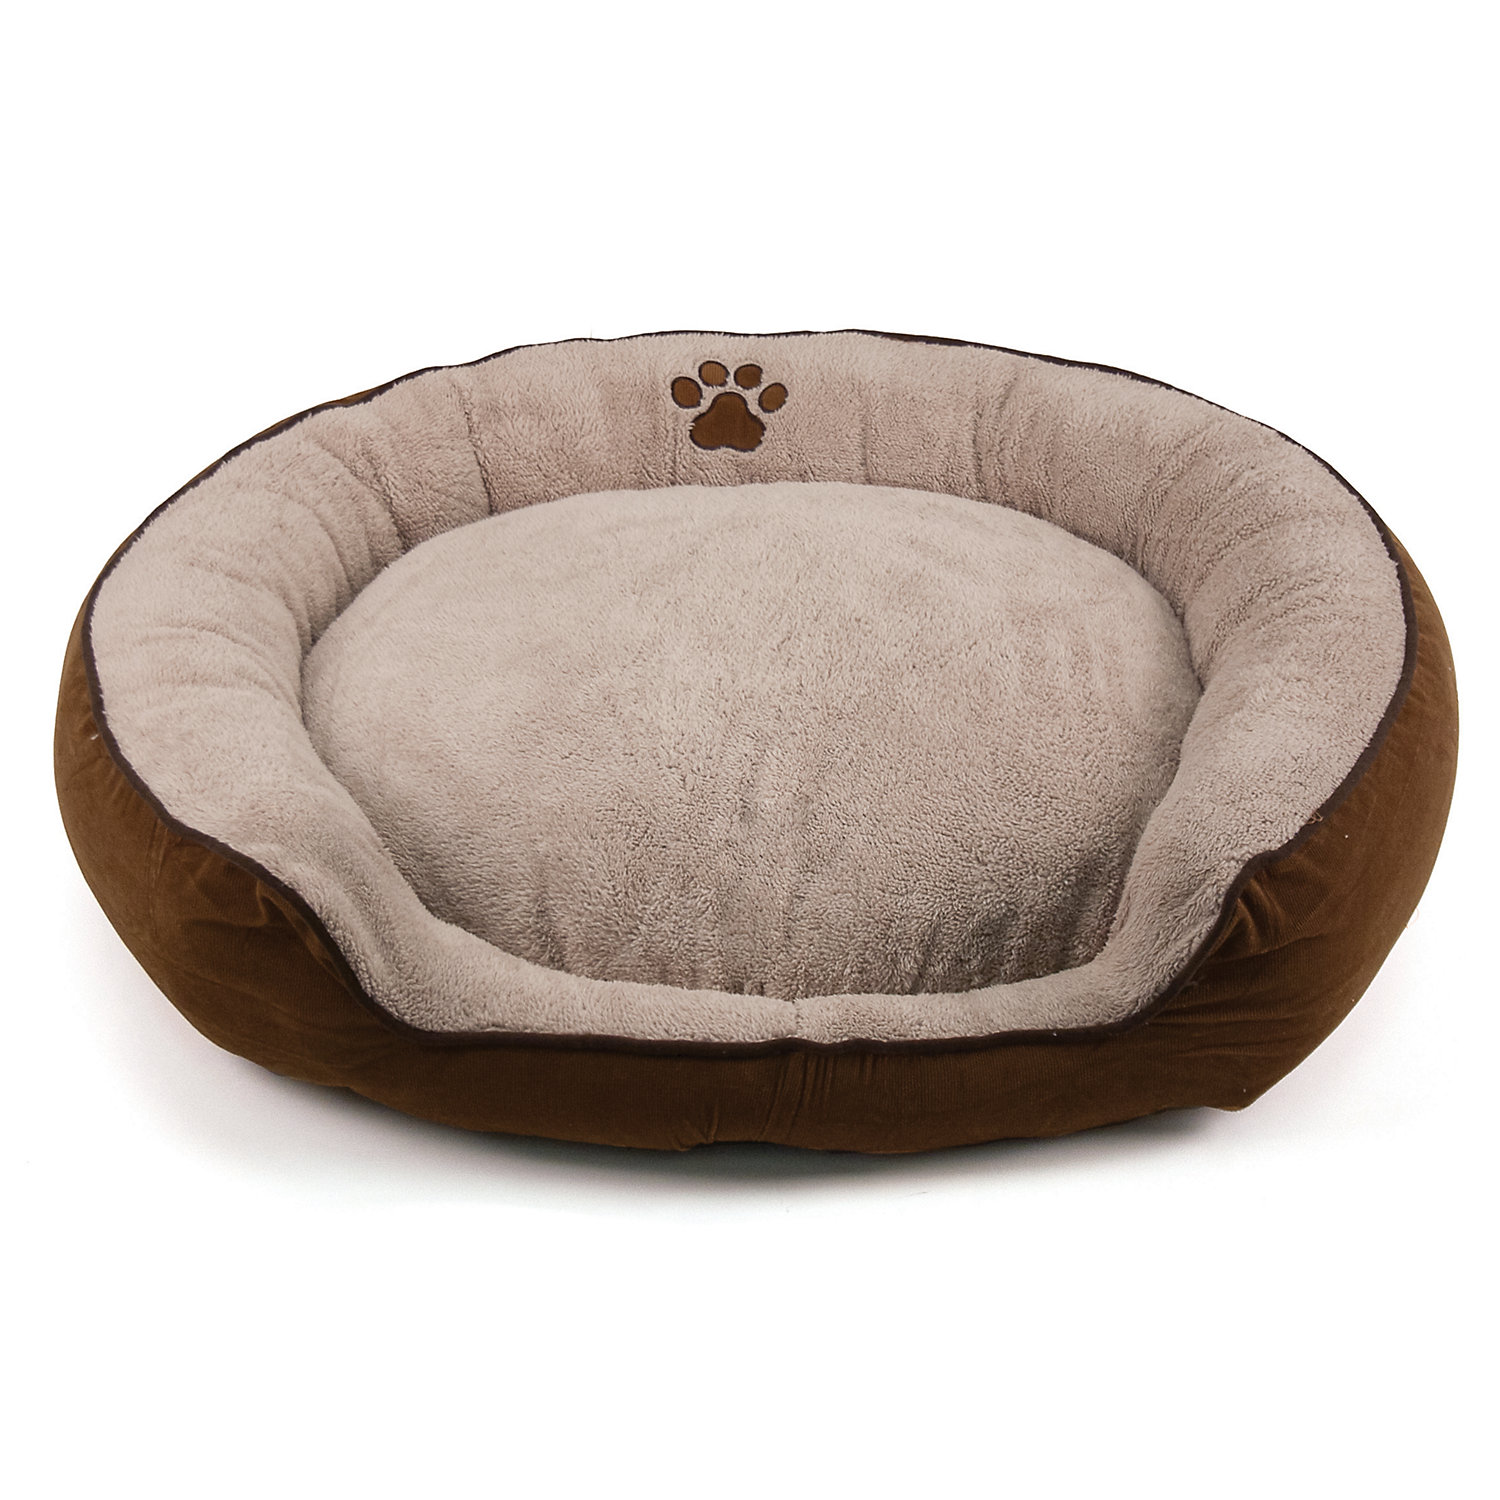 Brinkmann Pet Plaid Gusseted Beds For Dogs